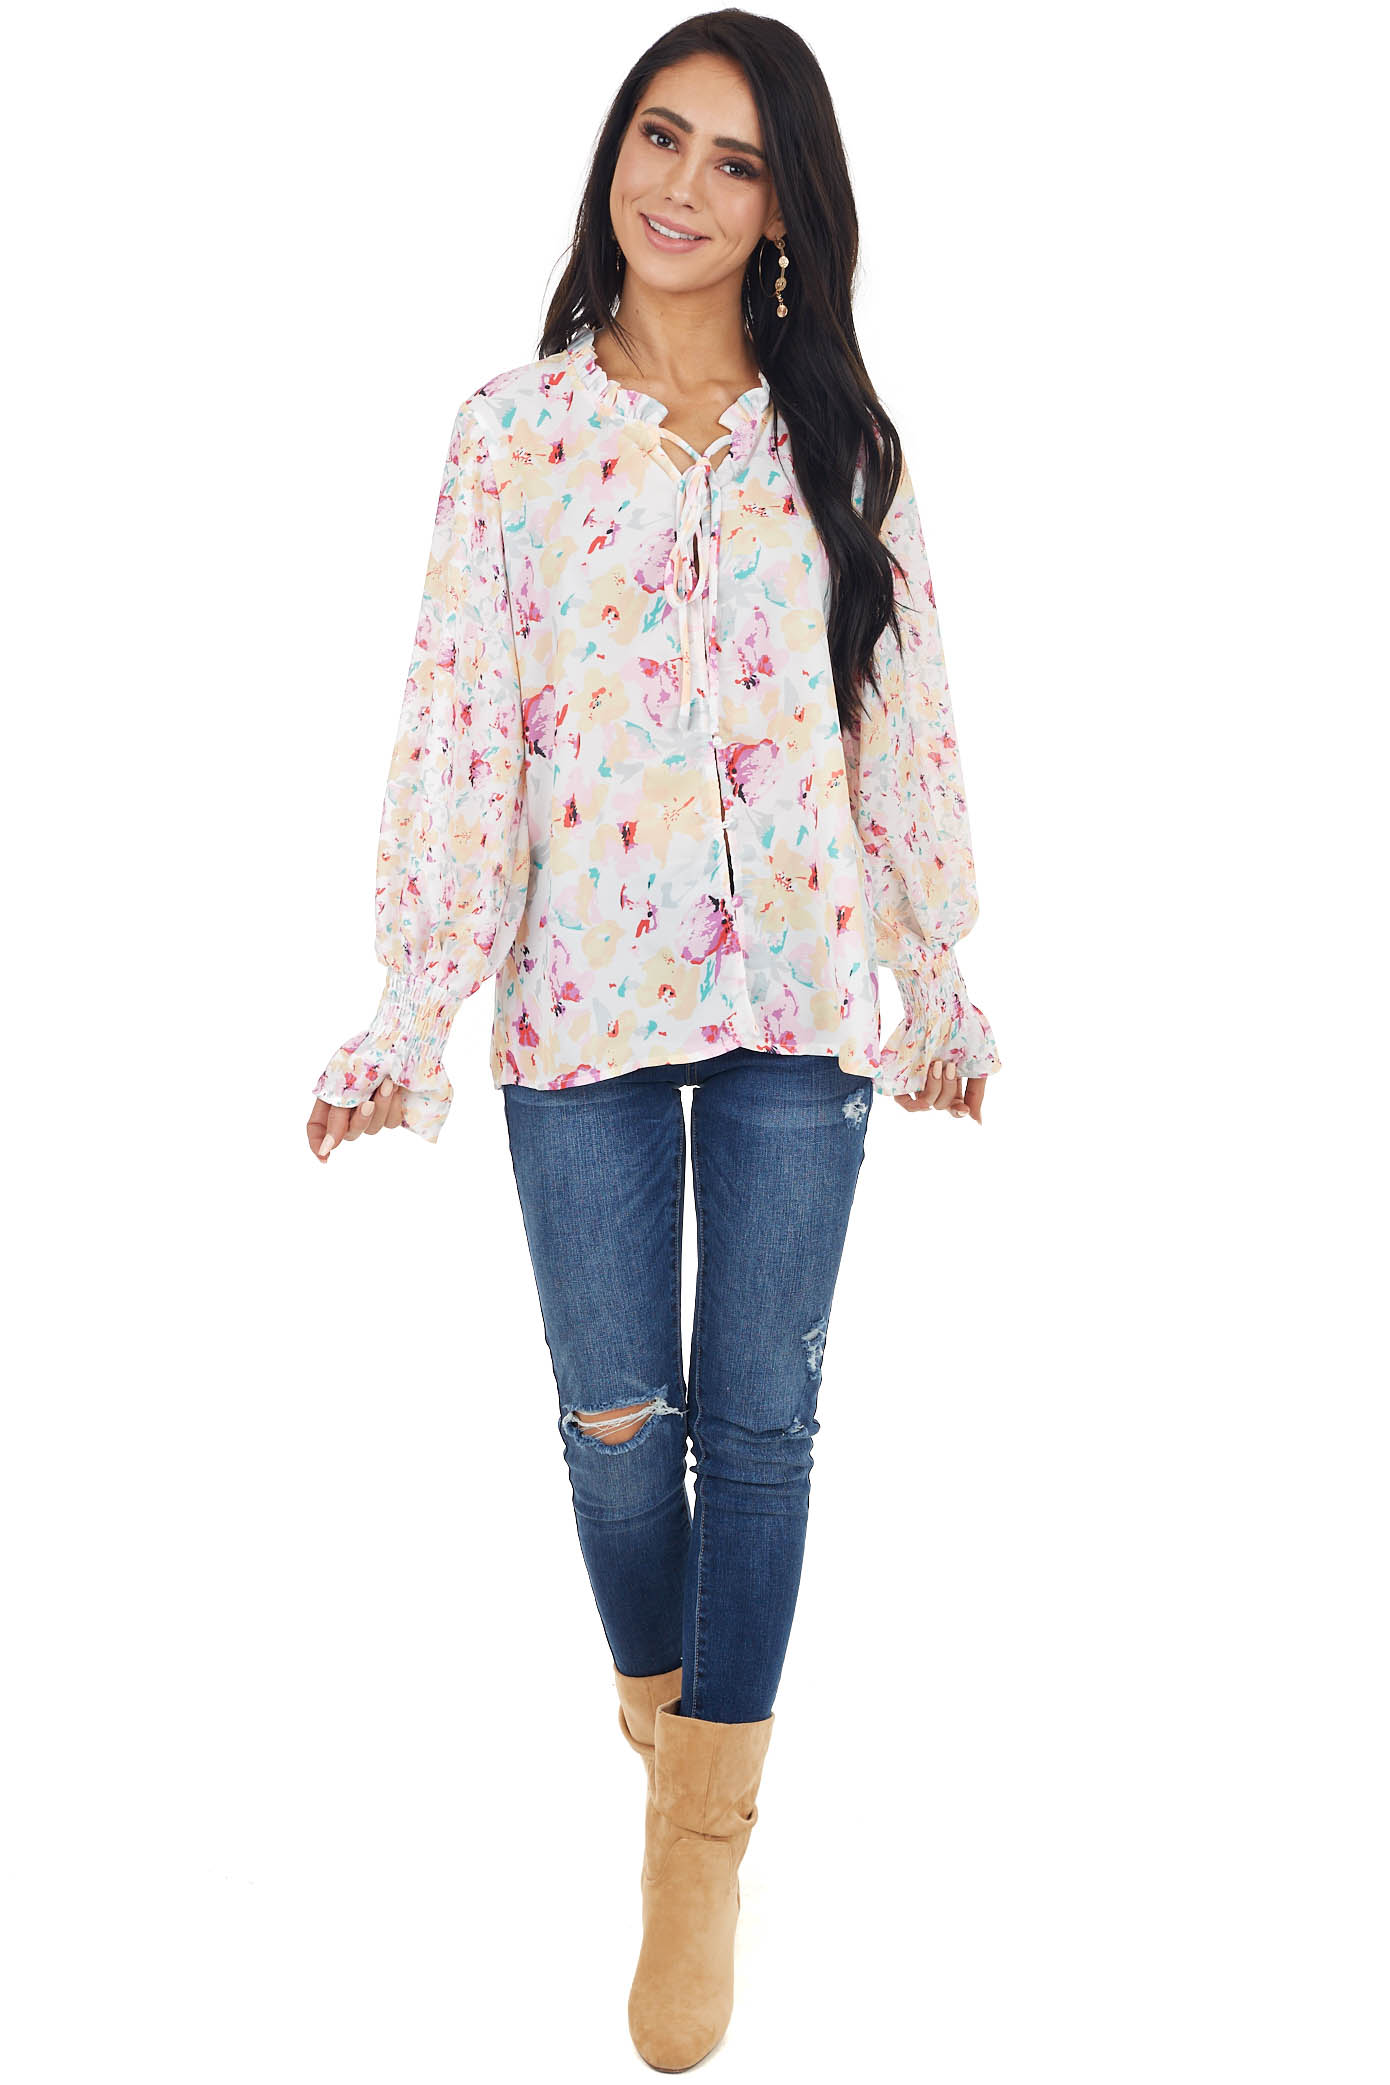 White Floral Print Blouse with Neck Tie and Button Details